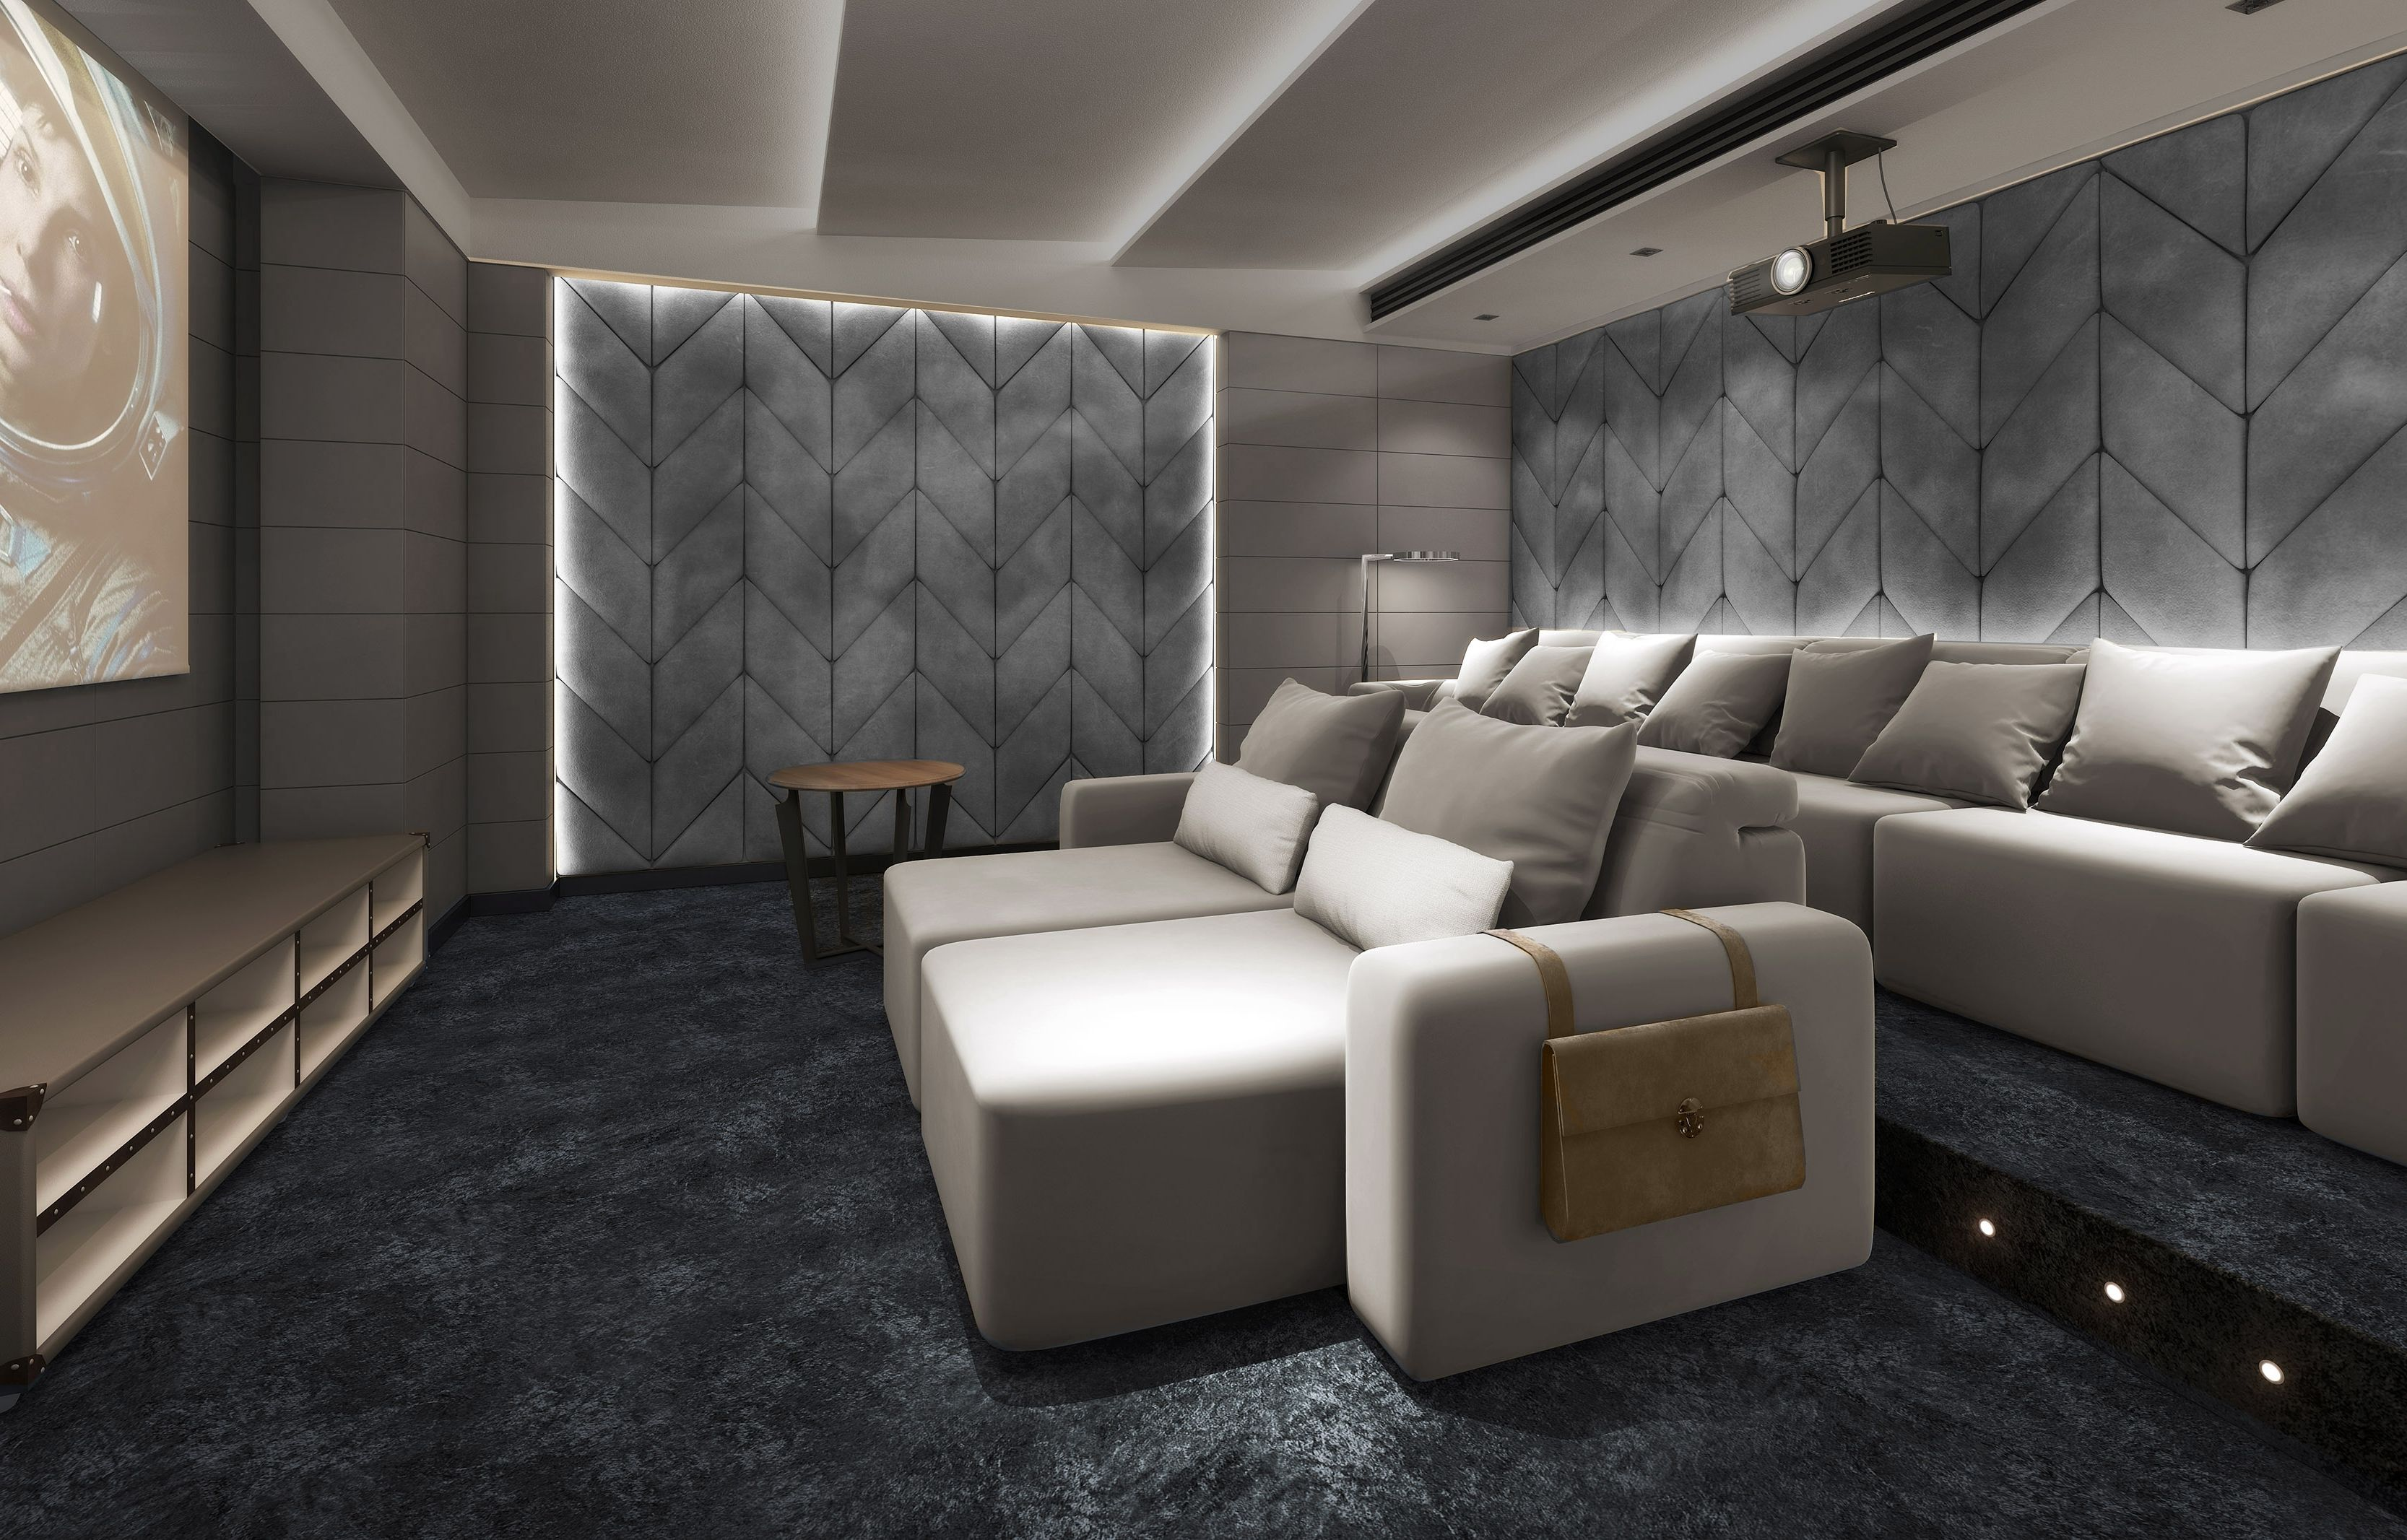 Pin von Indoor Cinema Lovers auf Decor | Pinterest | Keller ideen ...